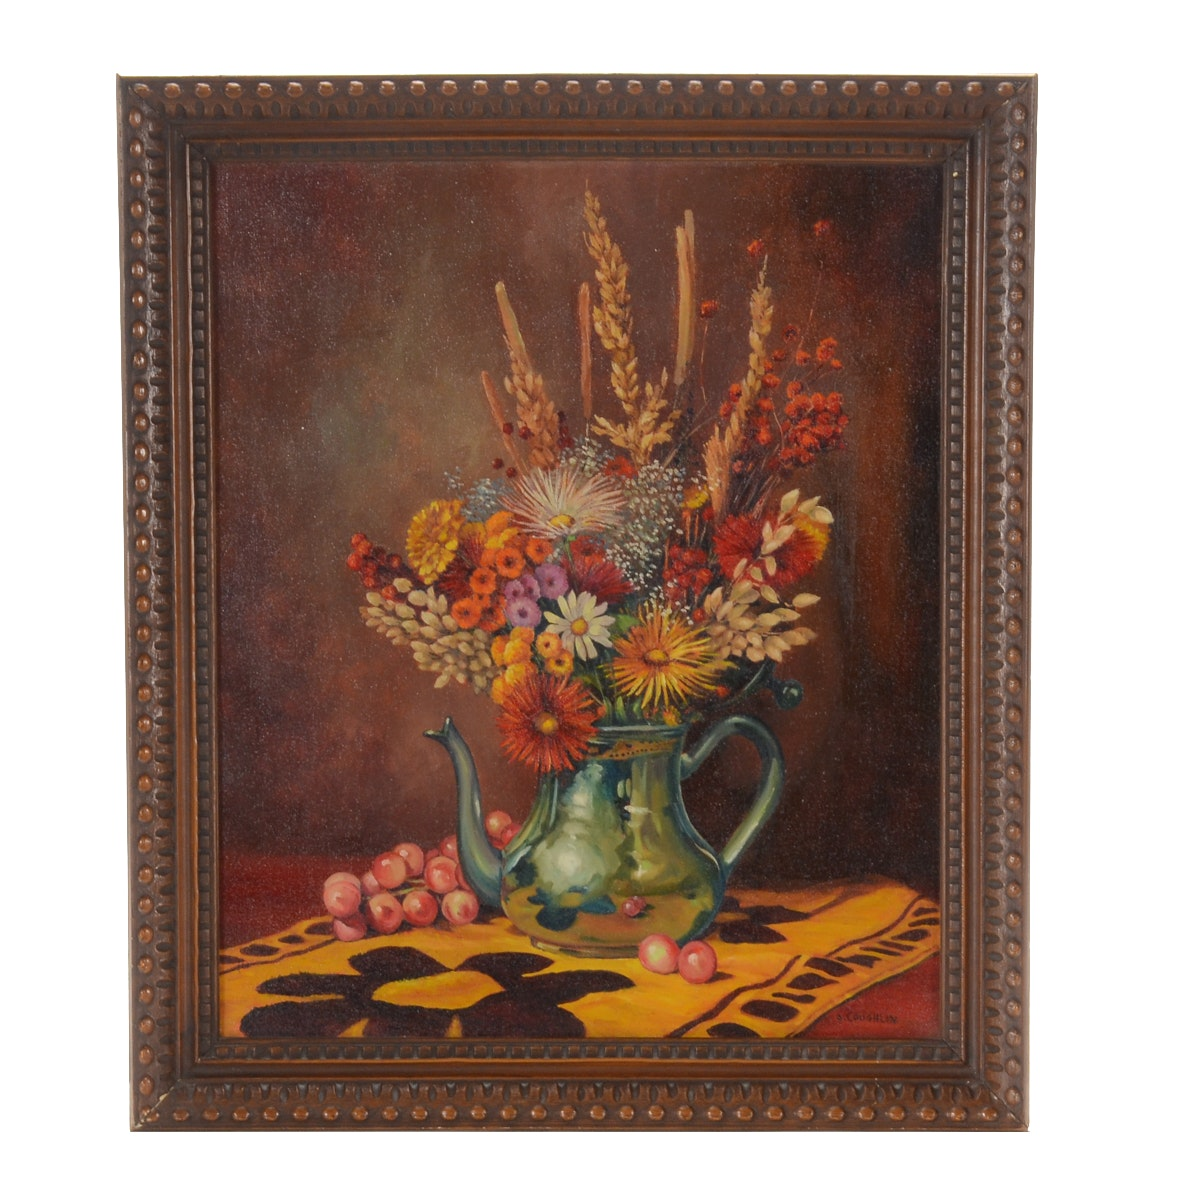 J. Coughlin Original Oil painting of a Still Life with Flowers